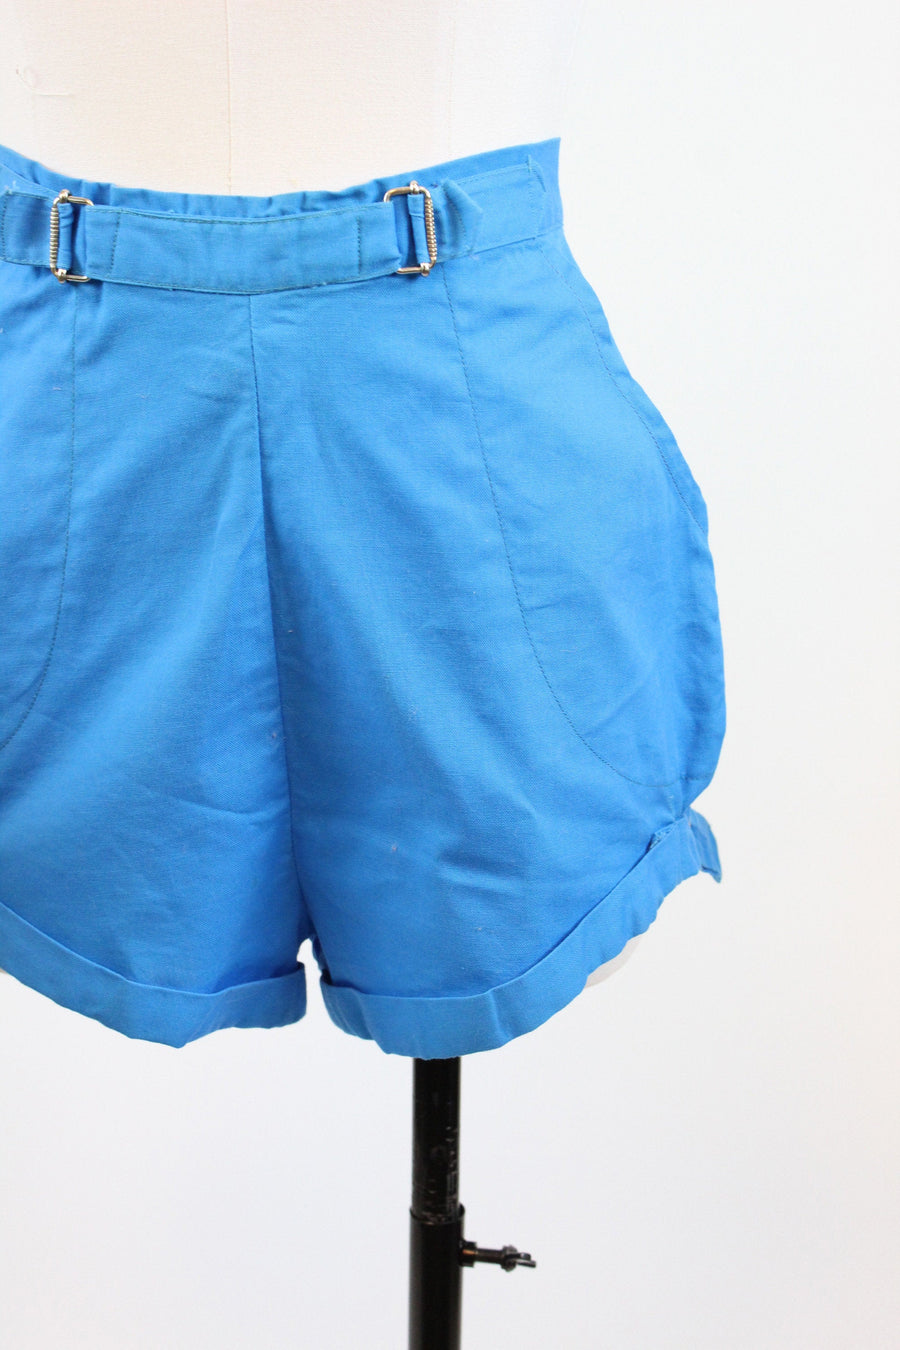 1950s Perry Sportswear shorts xs | vintage cotton shorts | new in